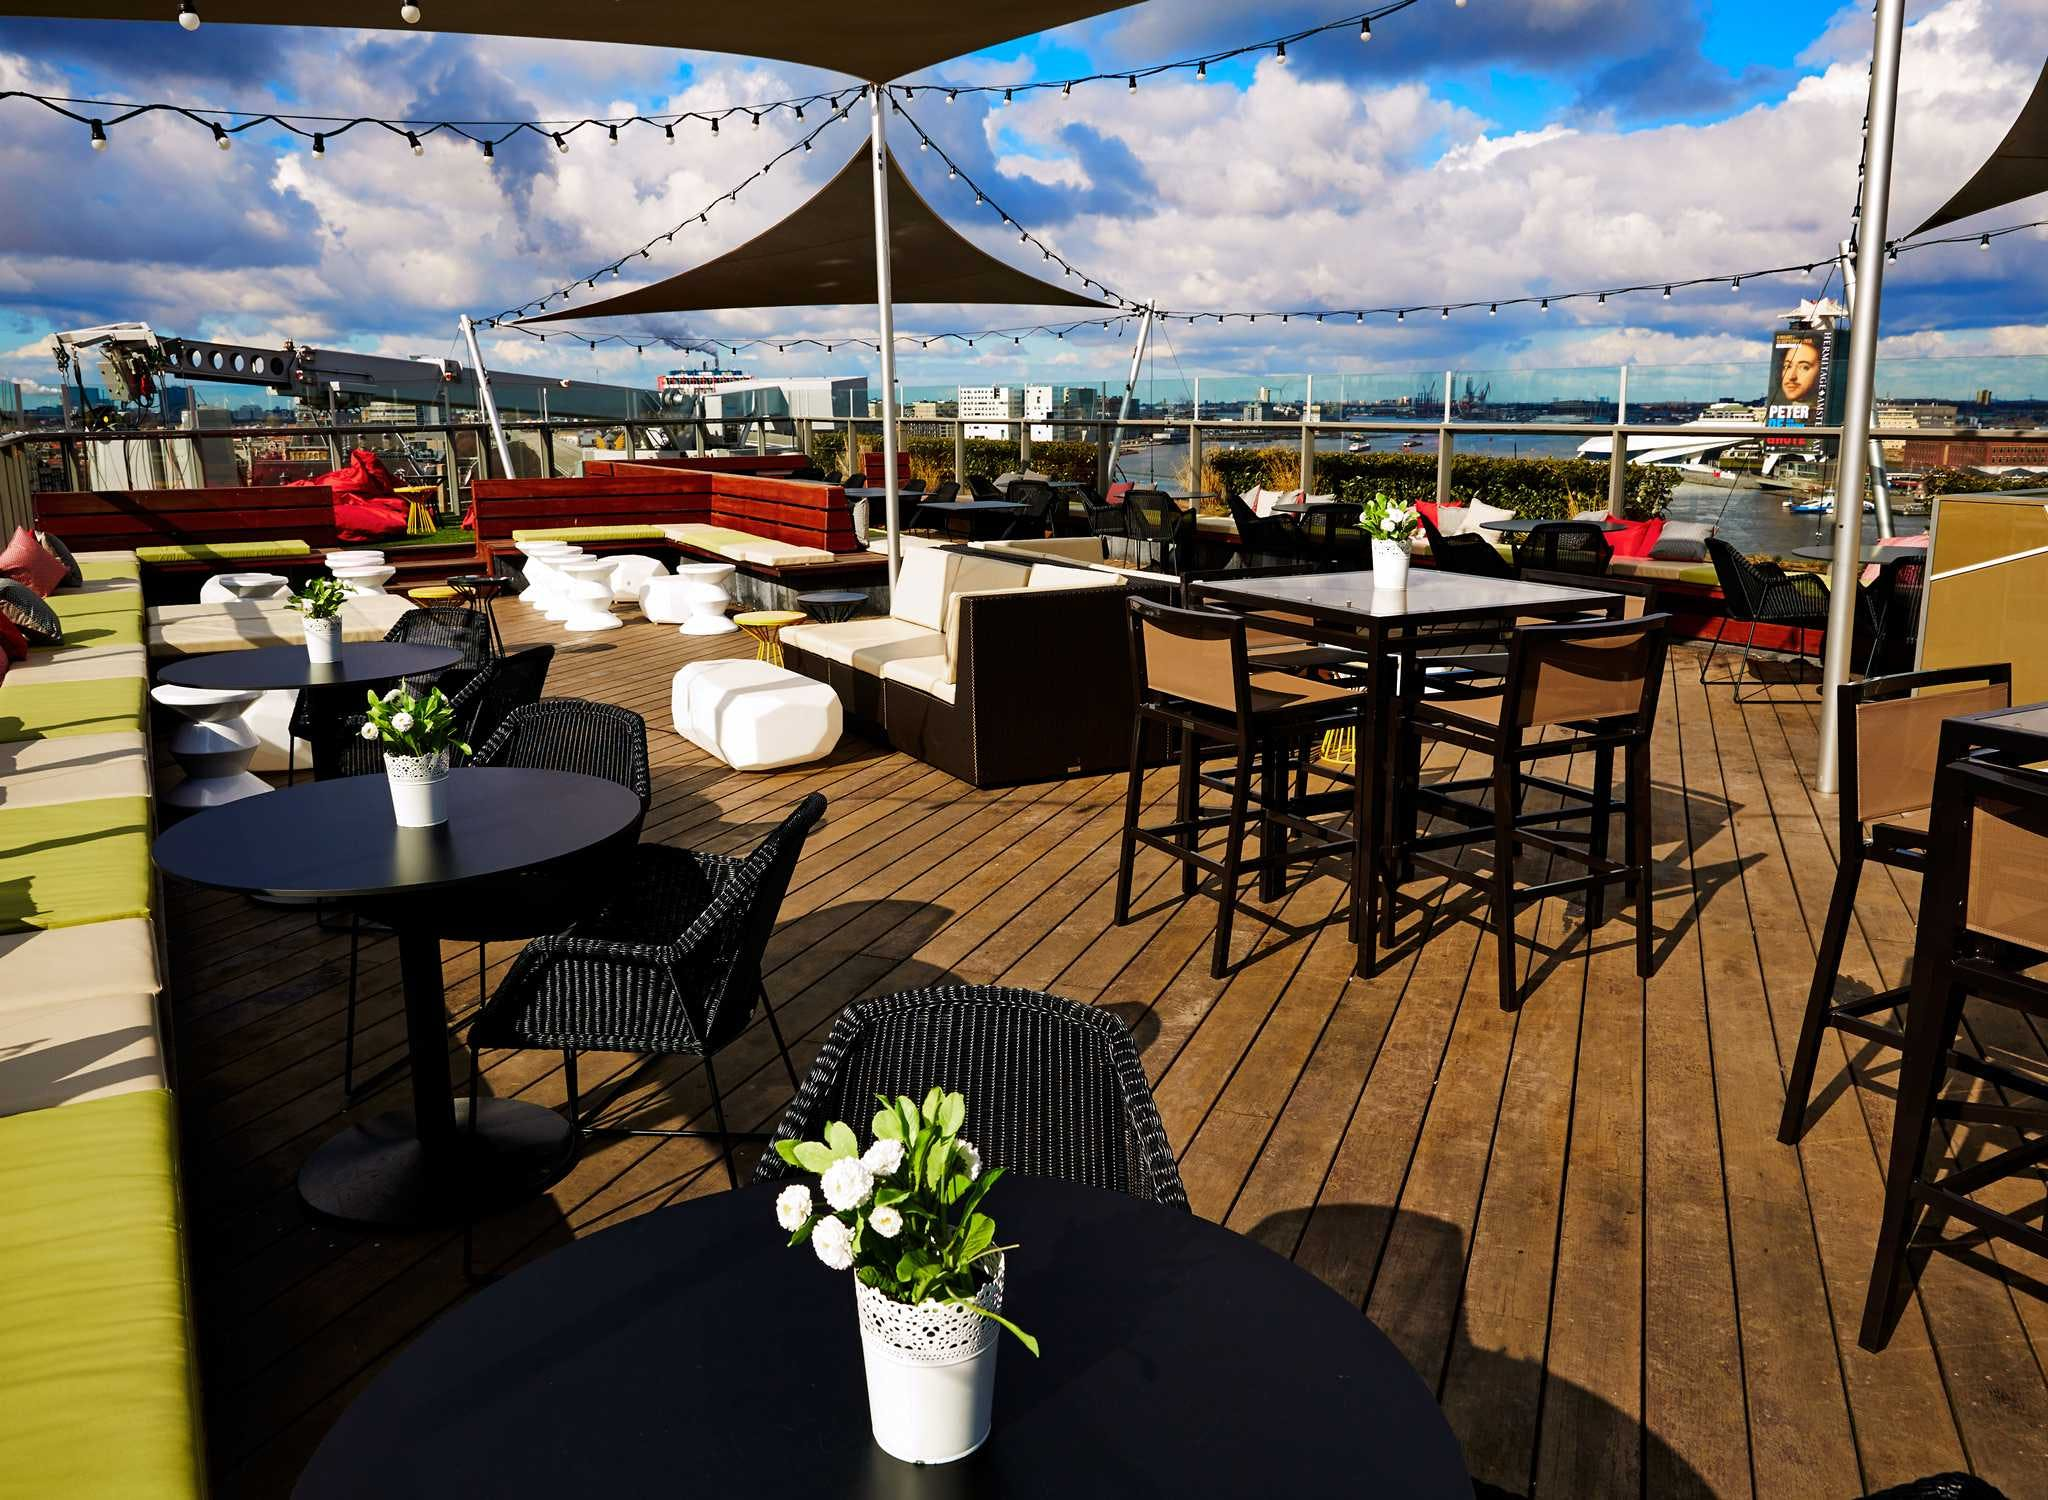 Doubletree by Hilton rooftop